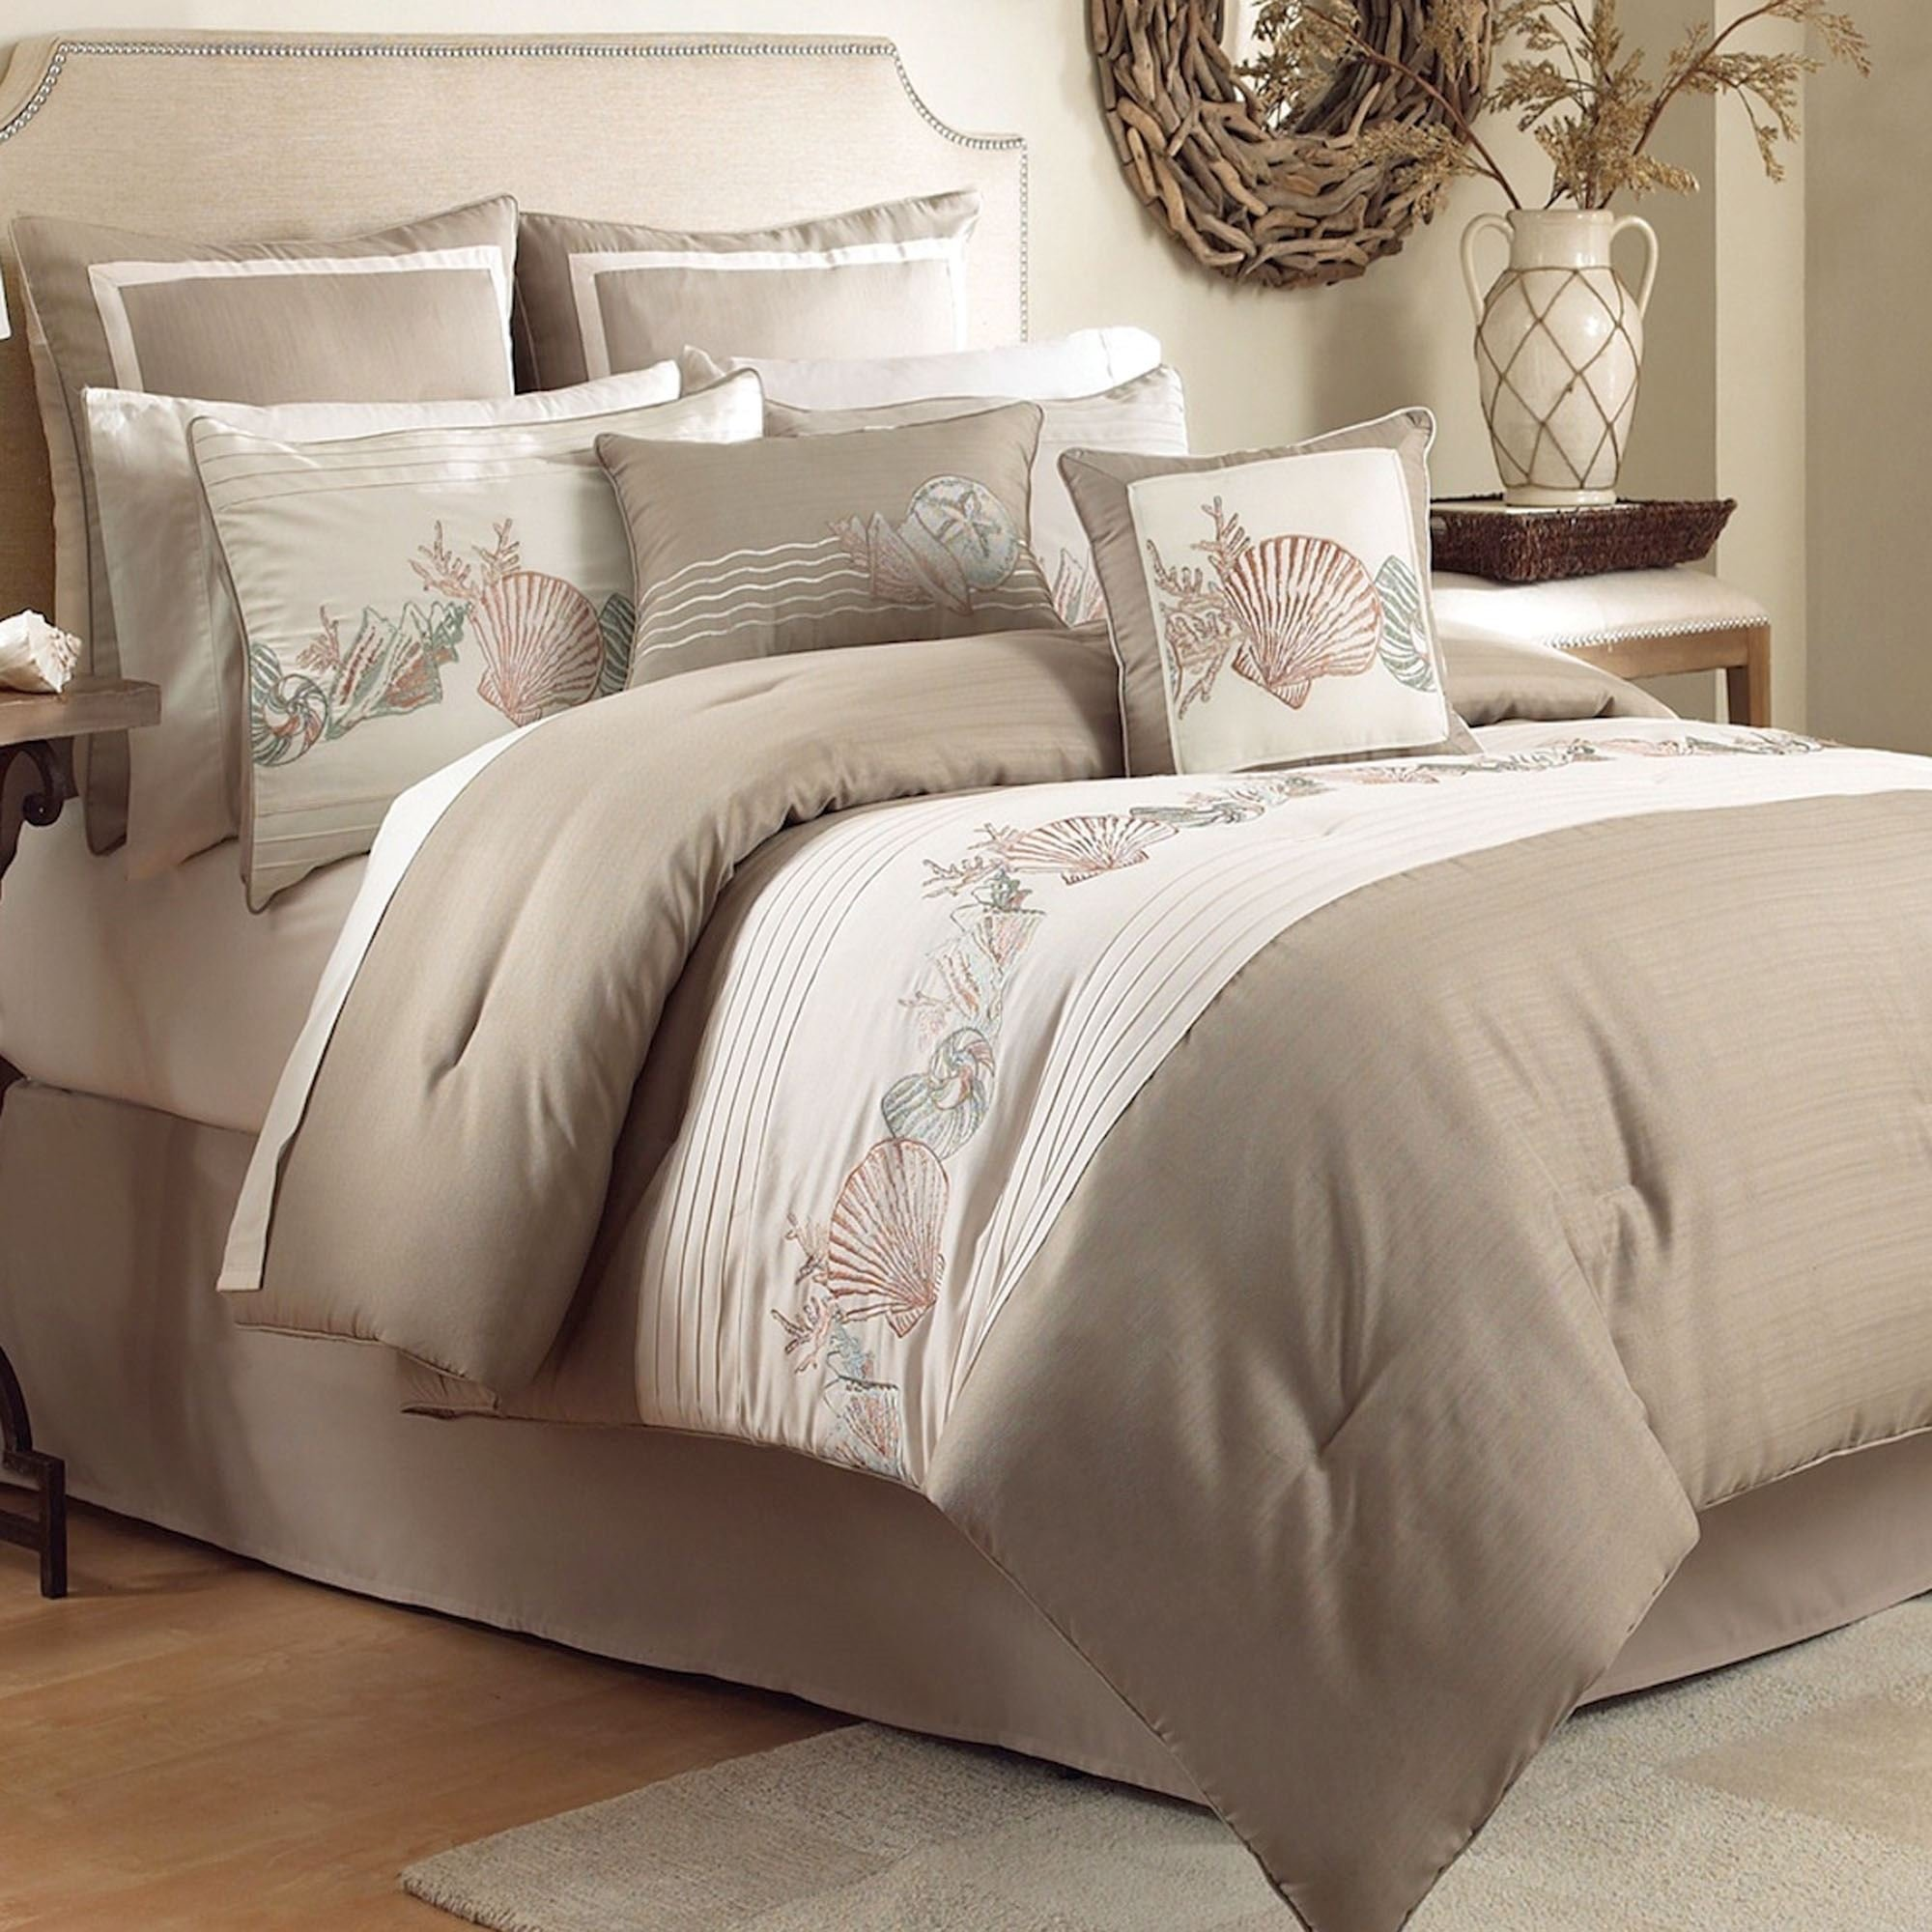 Best Seashore Coastal Comforter Bedding From Chapel Hill By With Pictures